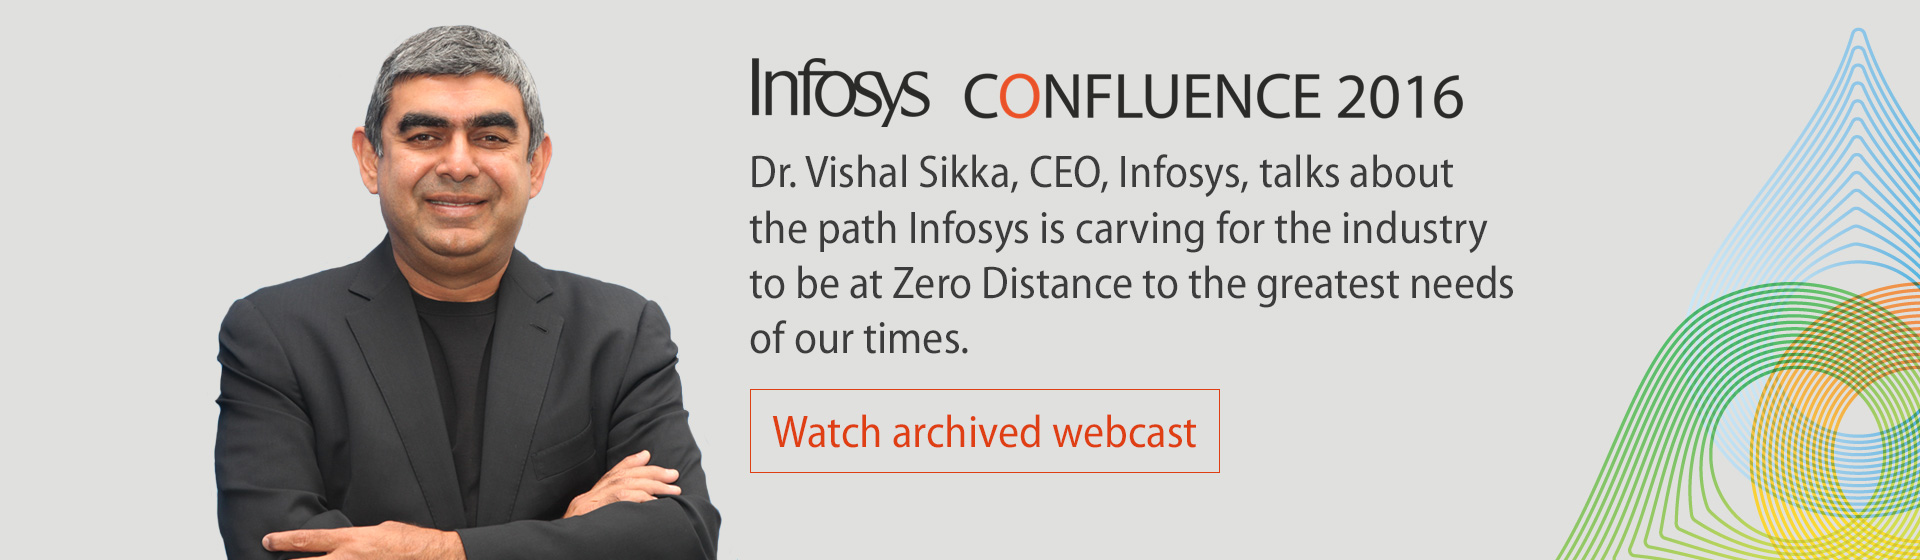 Dr. Vishal Sikka, CEO, Infosys, talks about the path Infosys is carving for the industry to be at Zero Distance to the greatest needs of our times.